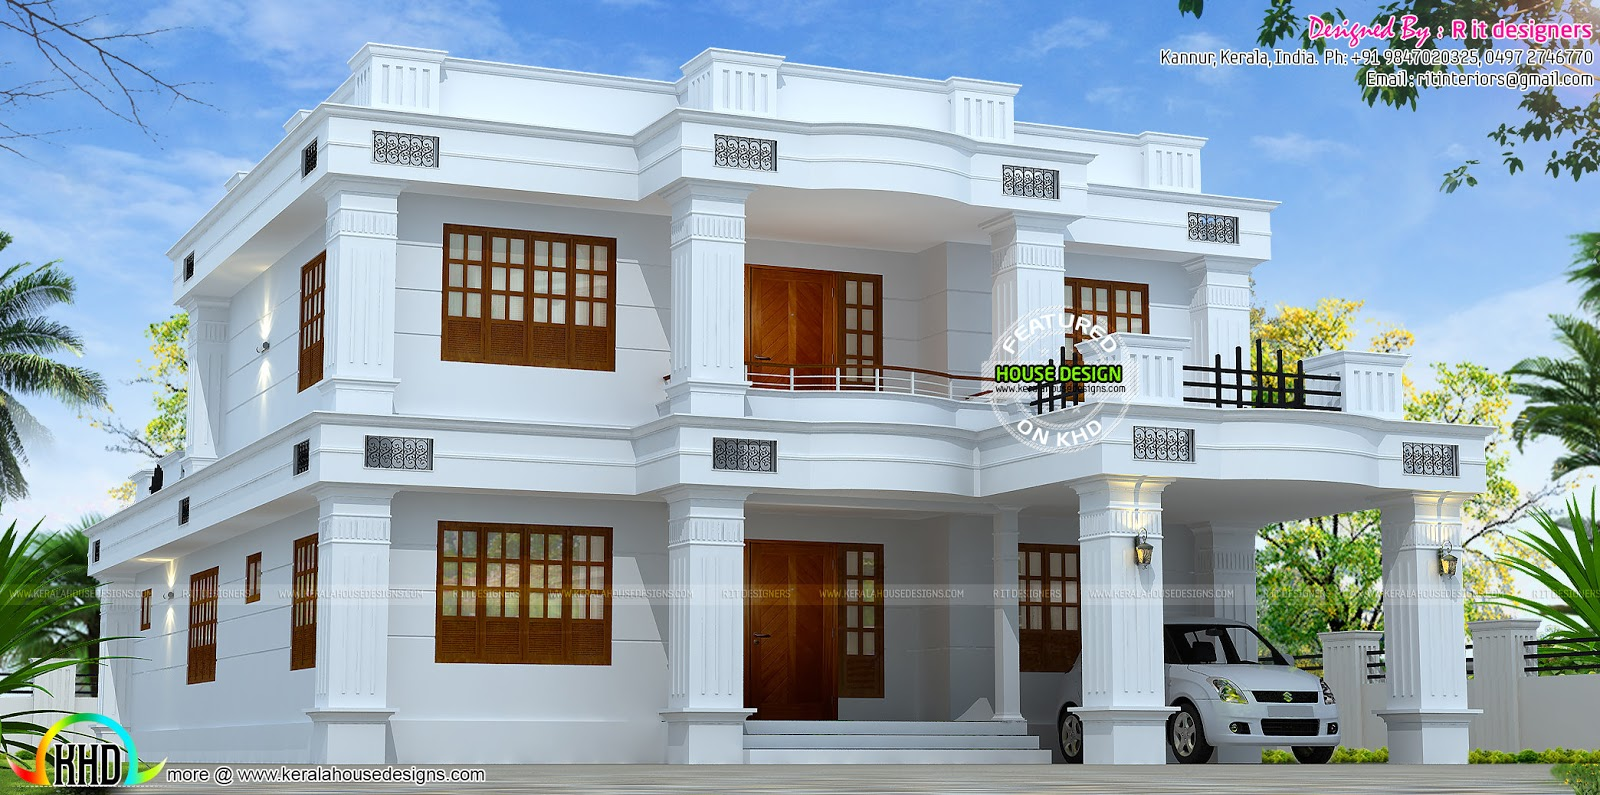 February 2016 kerala home design and floor plans for Kerala house design plans